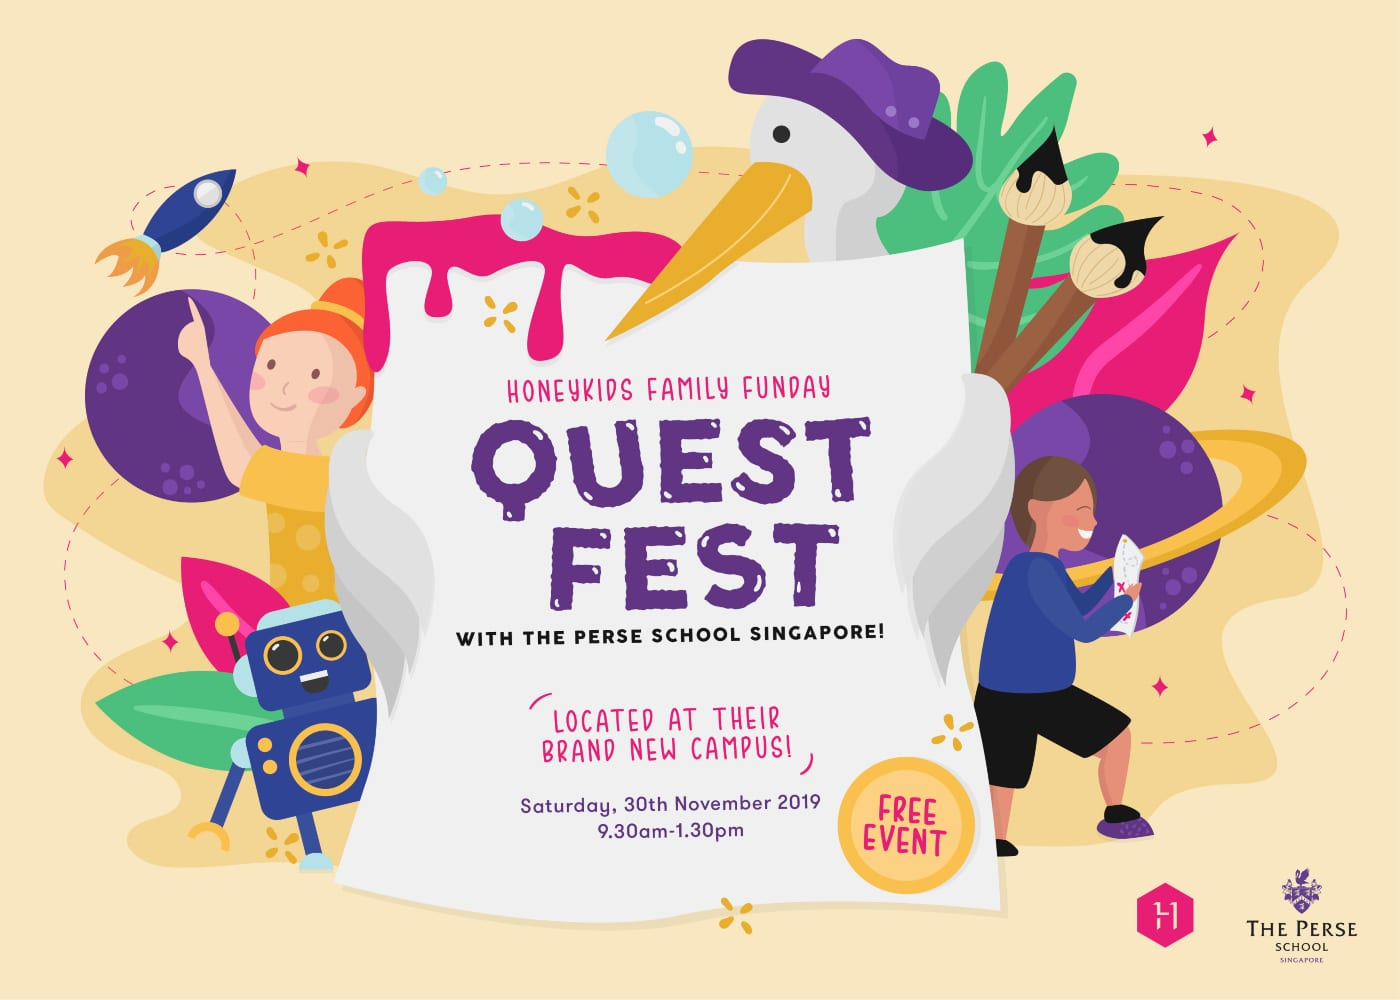 It's this weekend! See you there at HoneyKids Family Fun Day presents: Quest Fest with The Perse School Singapore